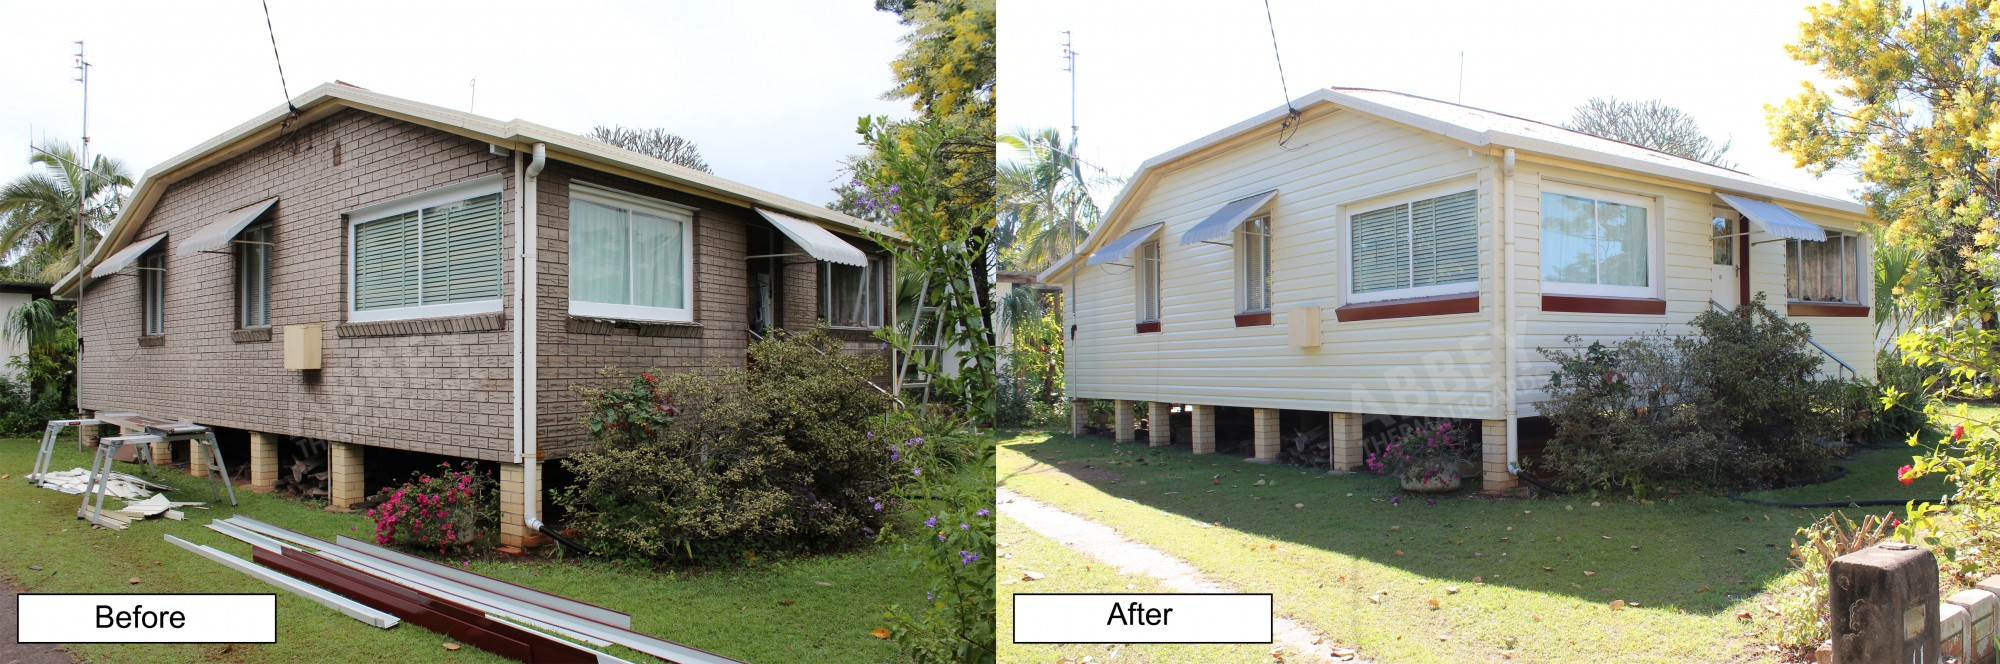 Before and after of a brick home that we completed fresh cladding over.